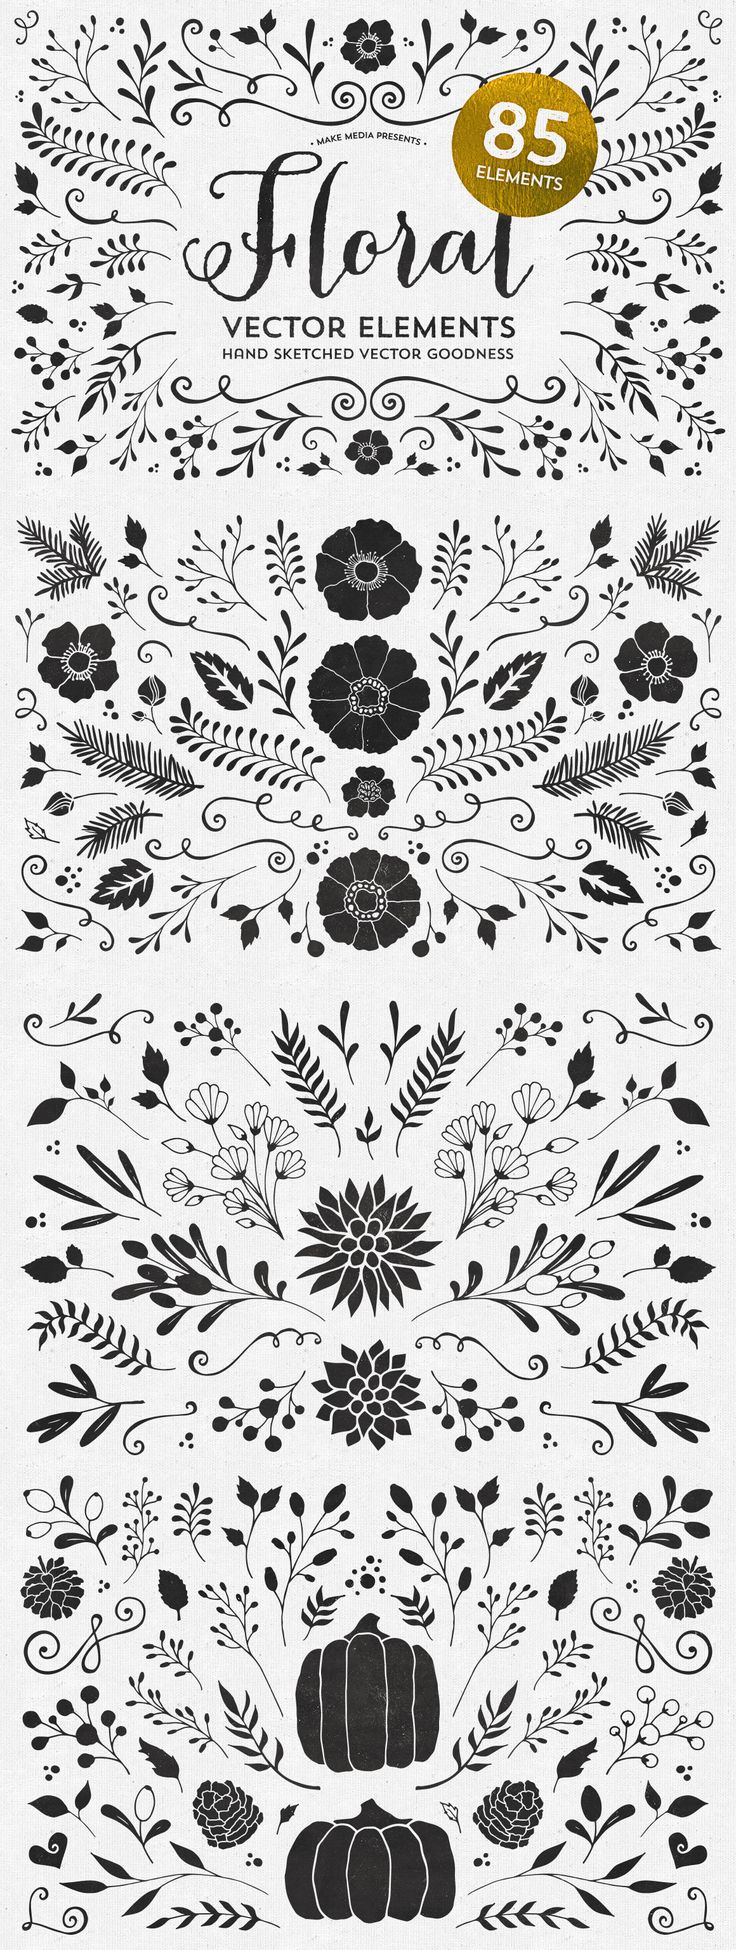 Just in case you're looking for some new vector elements, here are 85 beautiful, hand-sketched floral vectors. Use the elements on wedding invitations, save the date cards, flyers, apparel, as photo overlays and more!